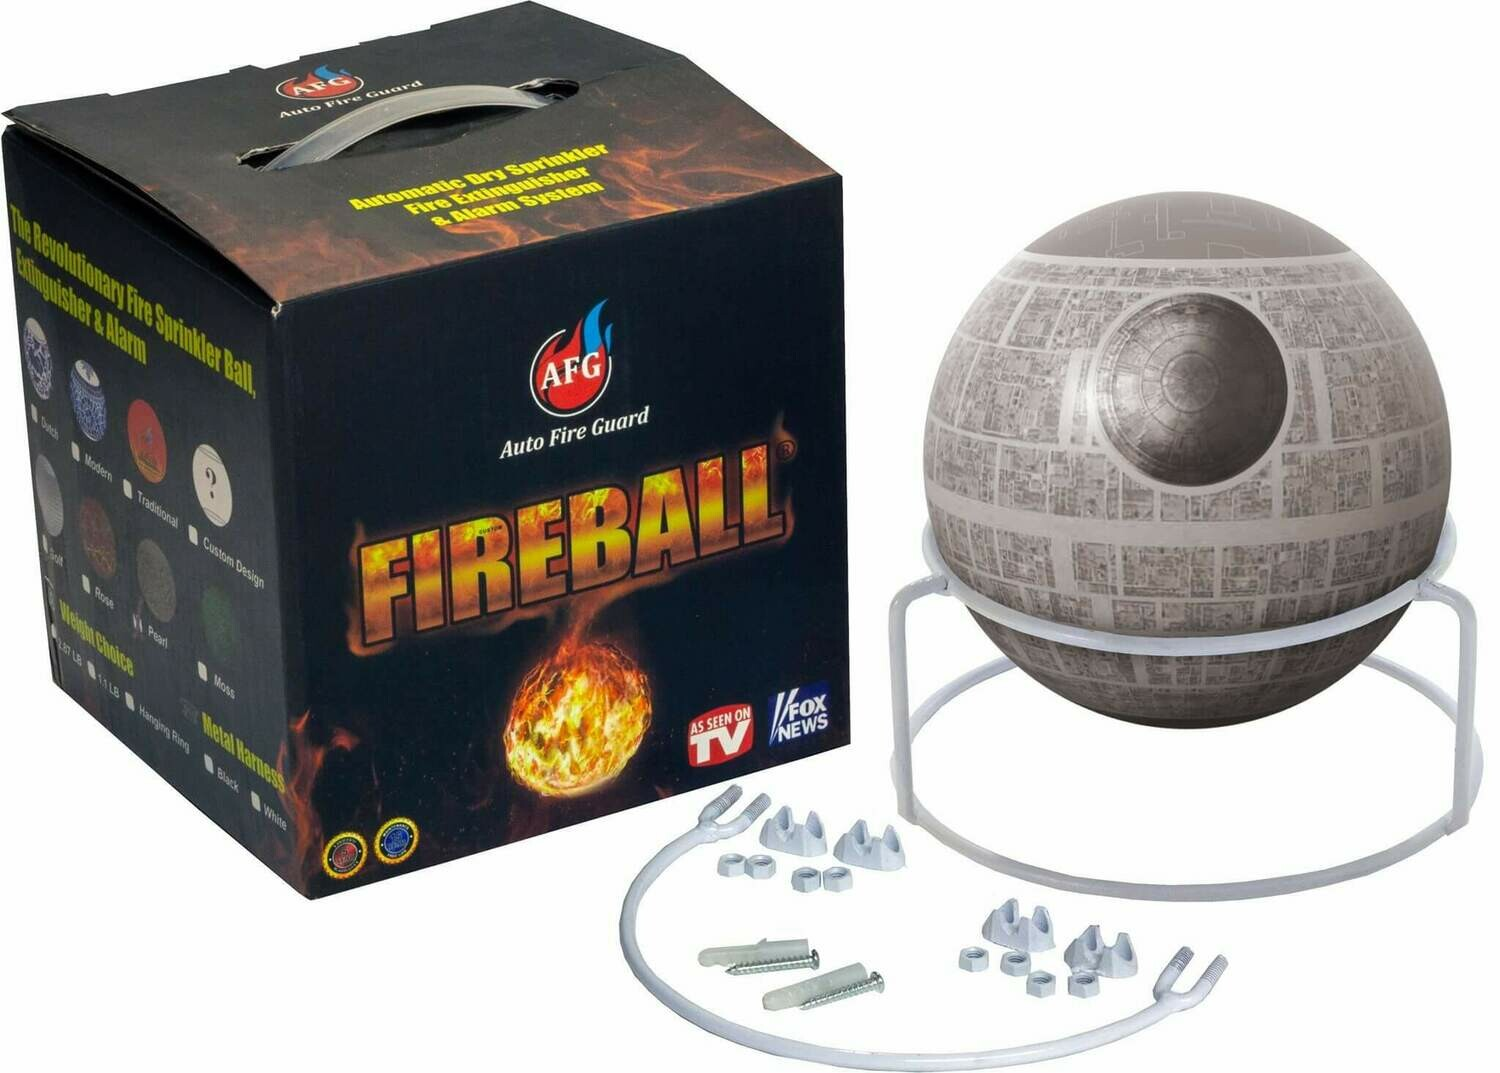 The Death Star Fireball